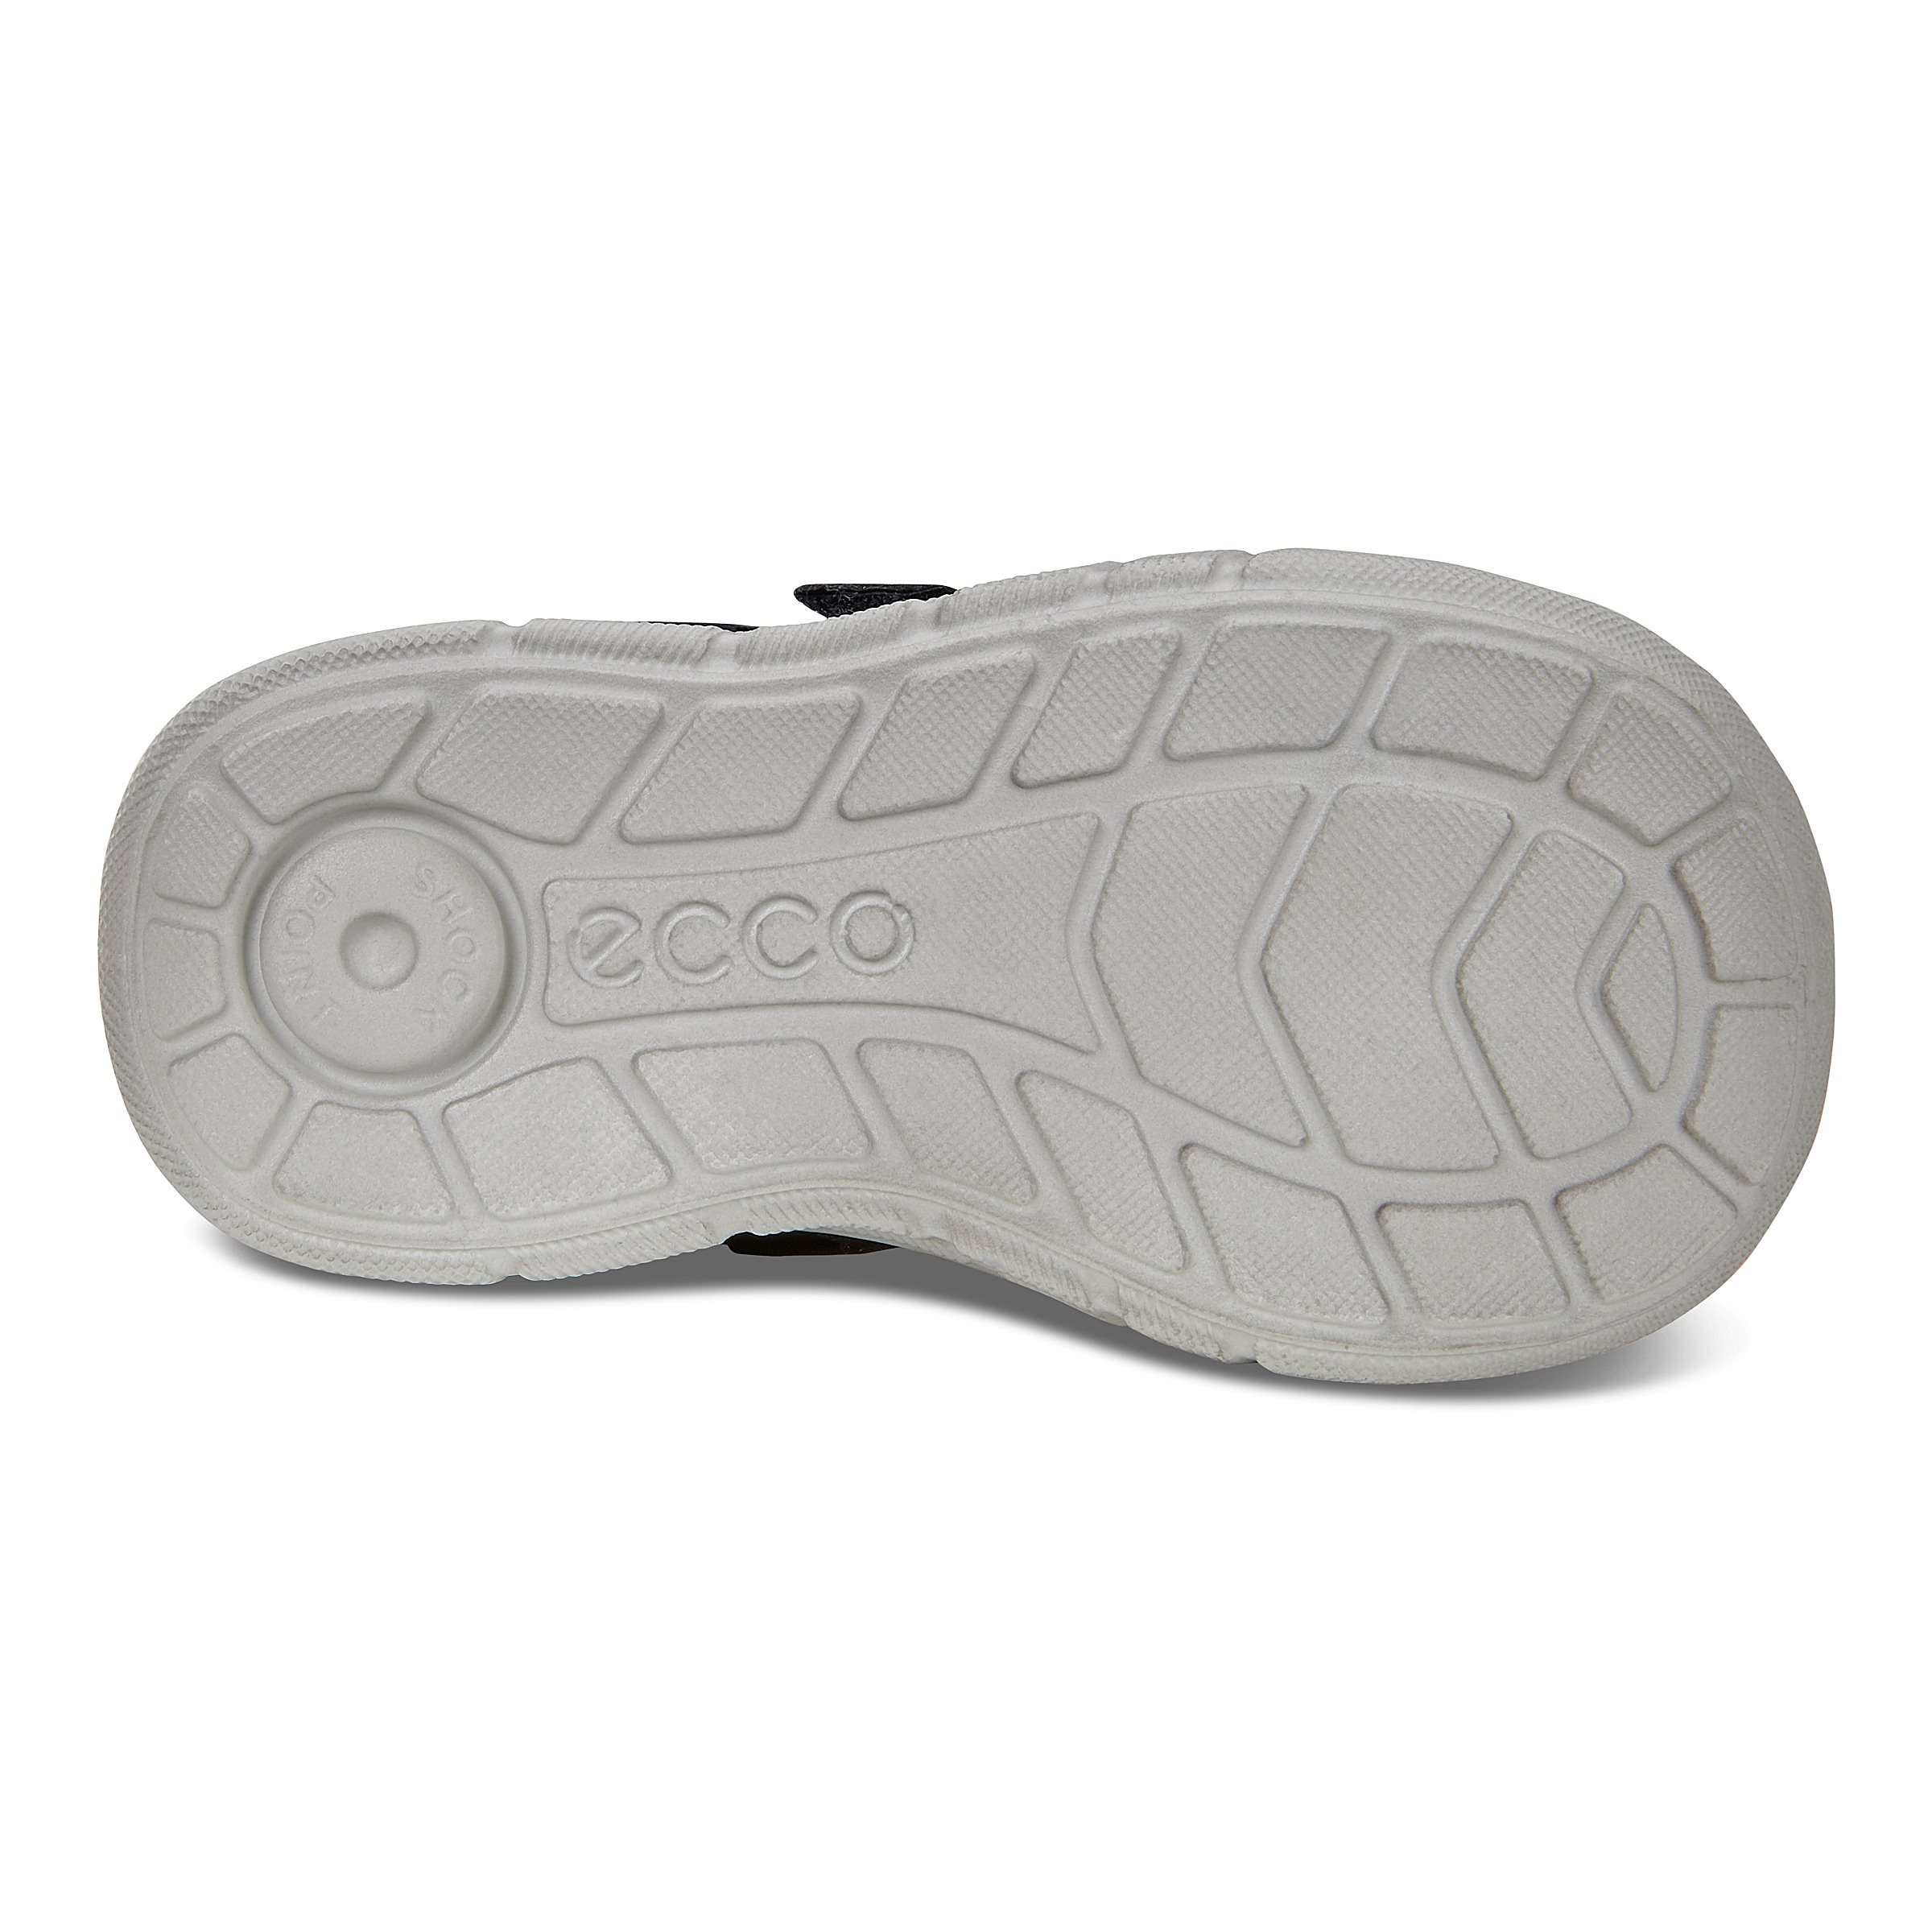 ecco first shoes